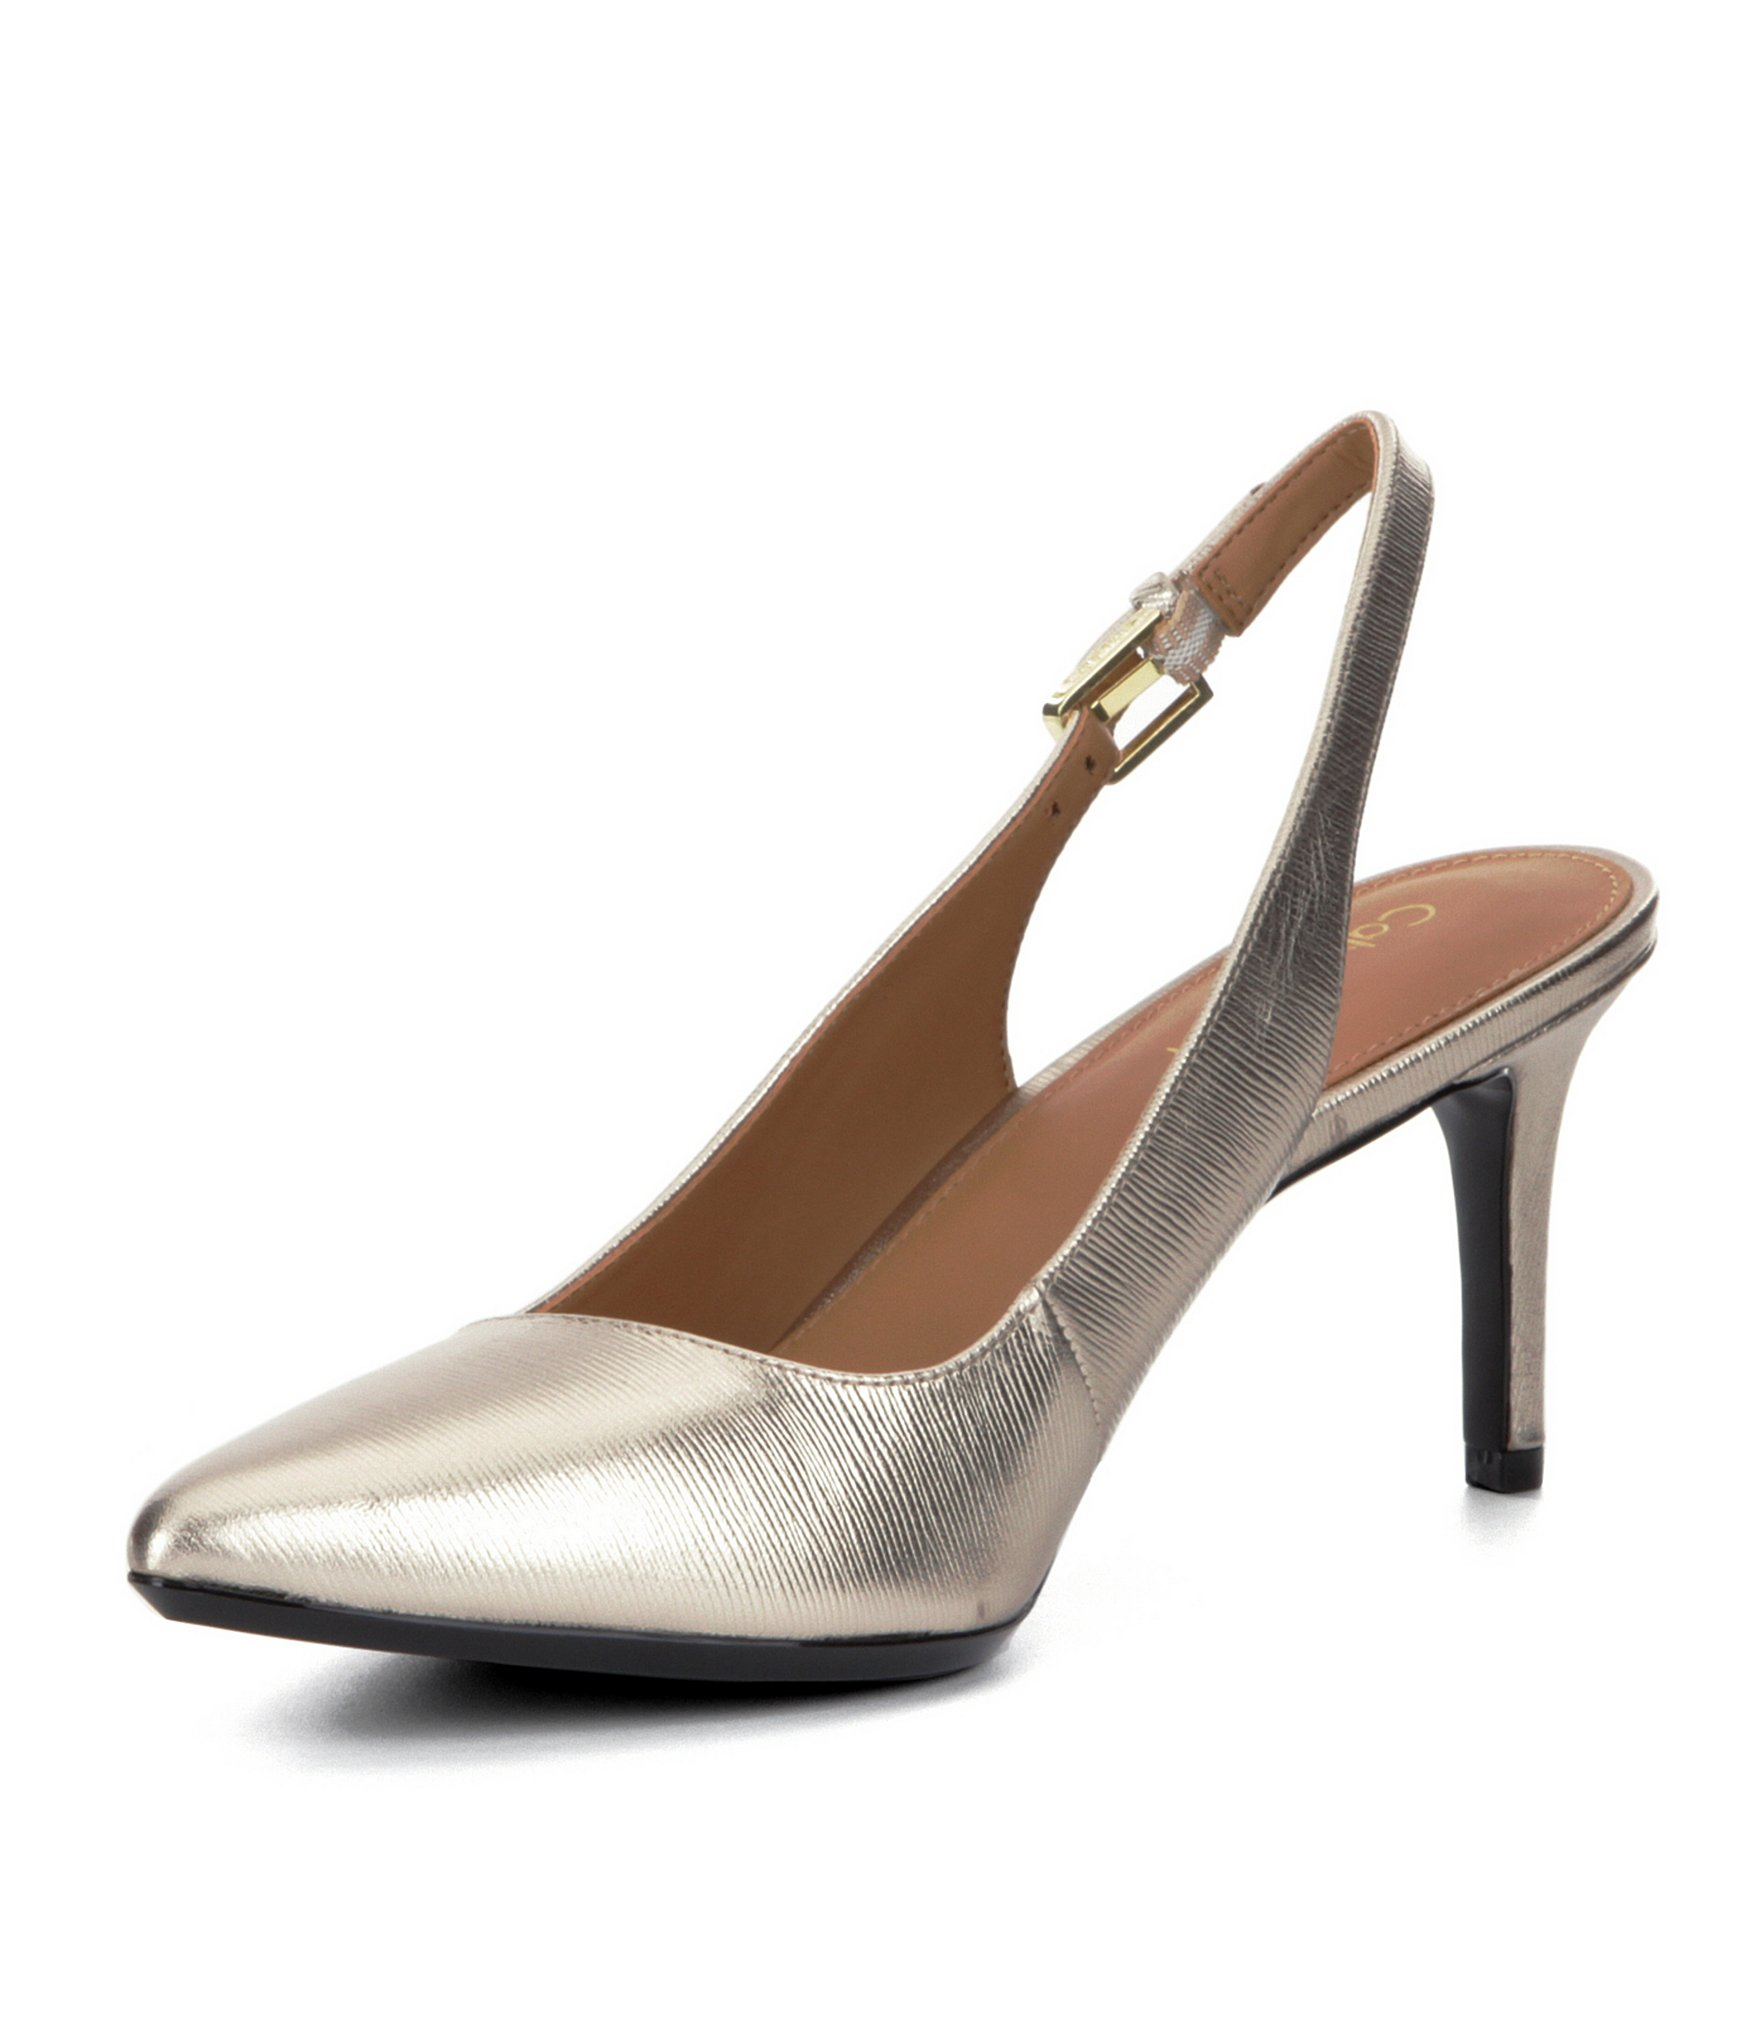 791f9315faf Lyst - Calvin Klein Giovanna Metallic Leather Slingback Pumps in ...